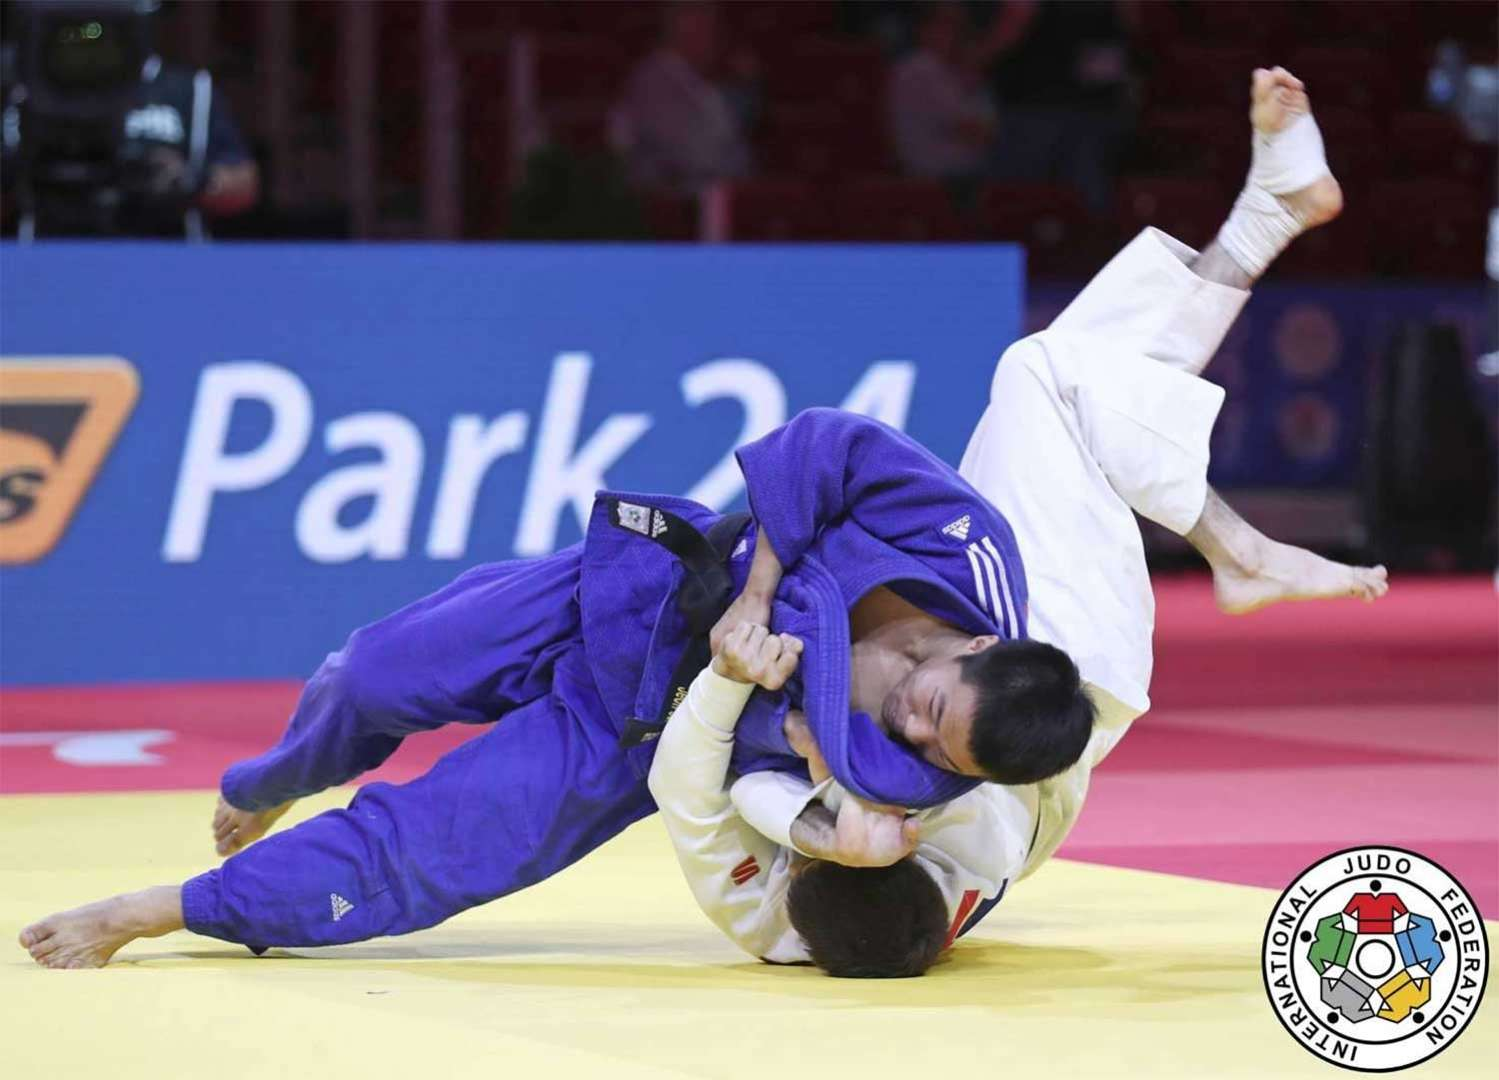 amended rules ijf orgdear members of the judo community,